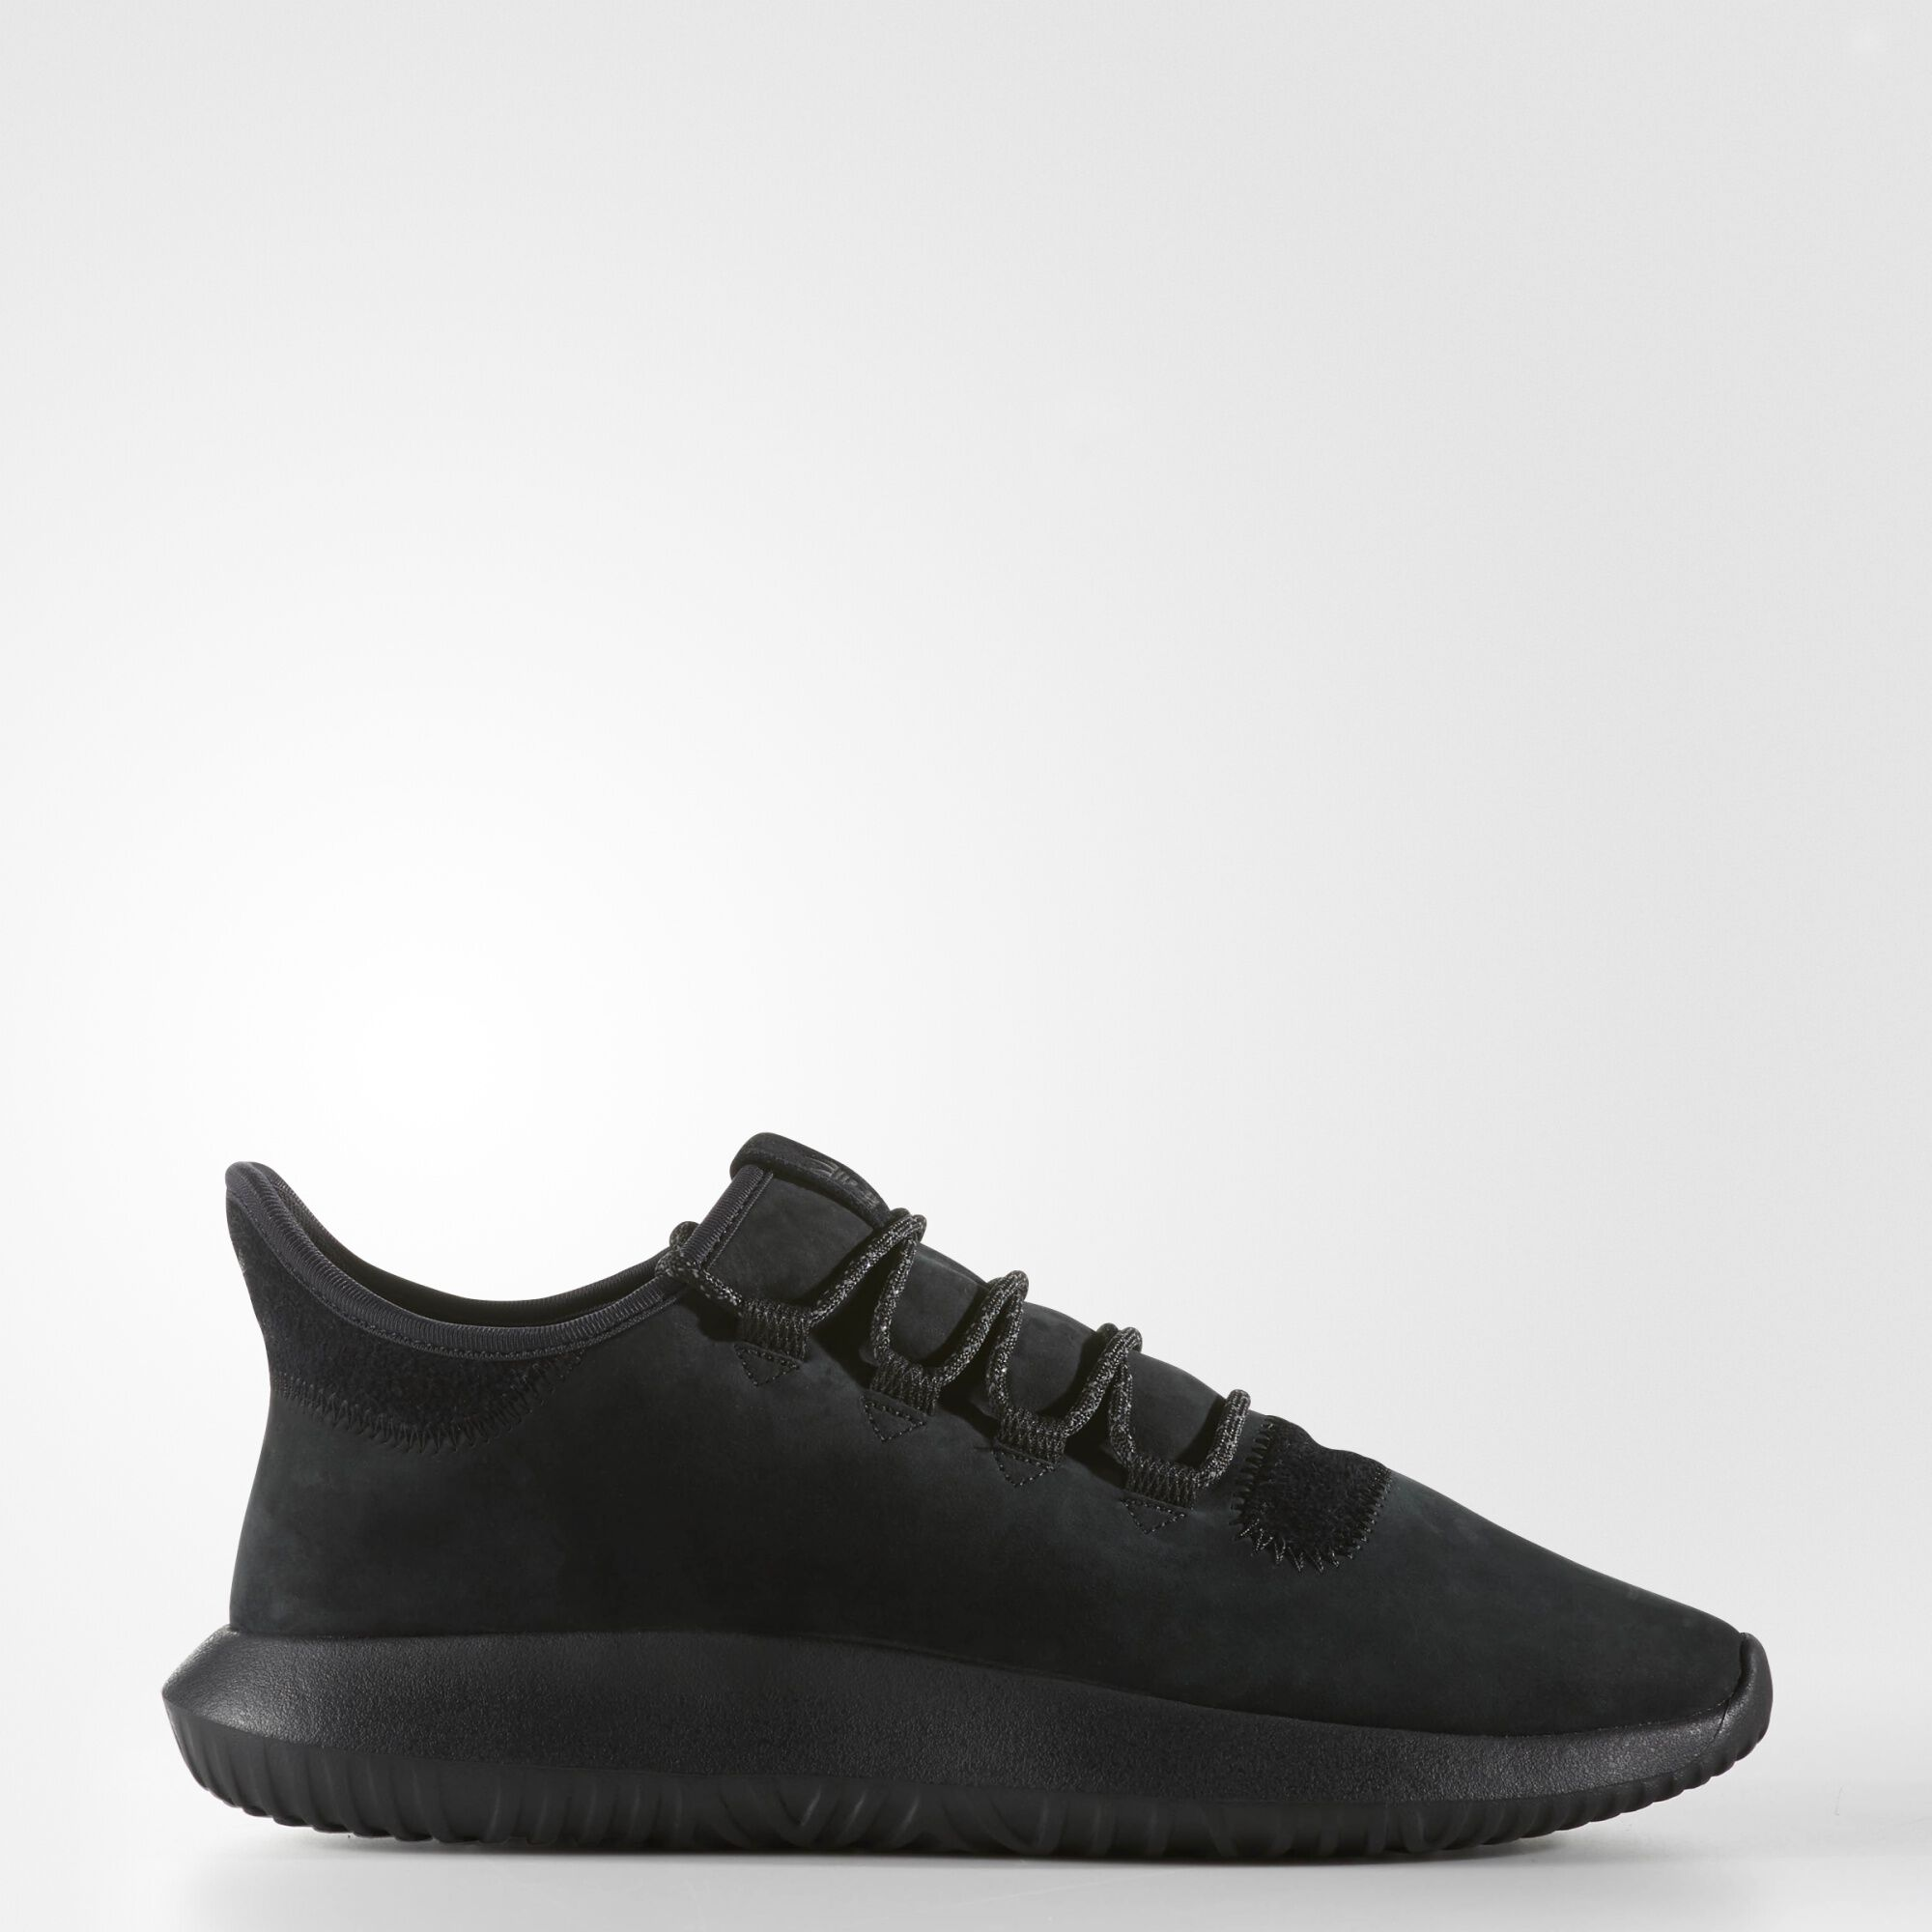 Adidas Tubular Shadow Suede